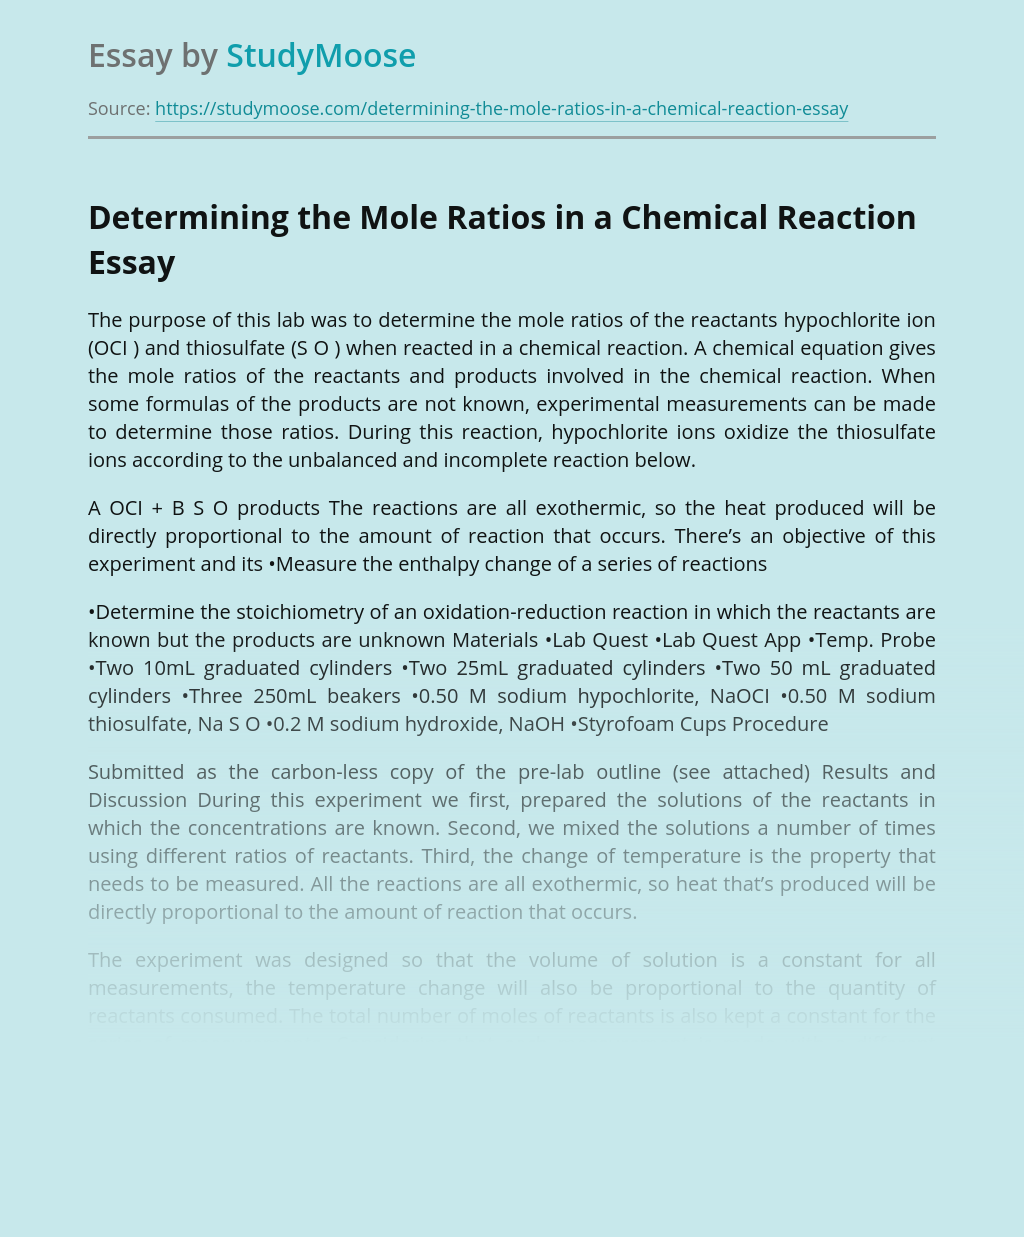 Determining the Mole Ratios in a Chemical Reaction